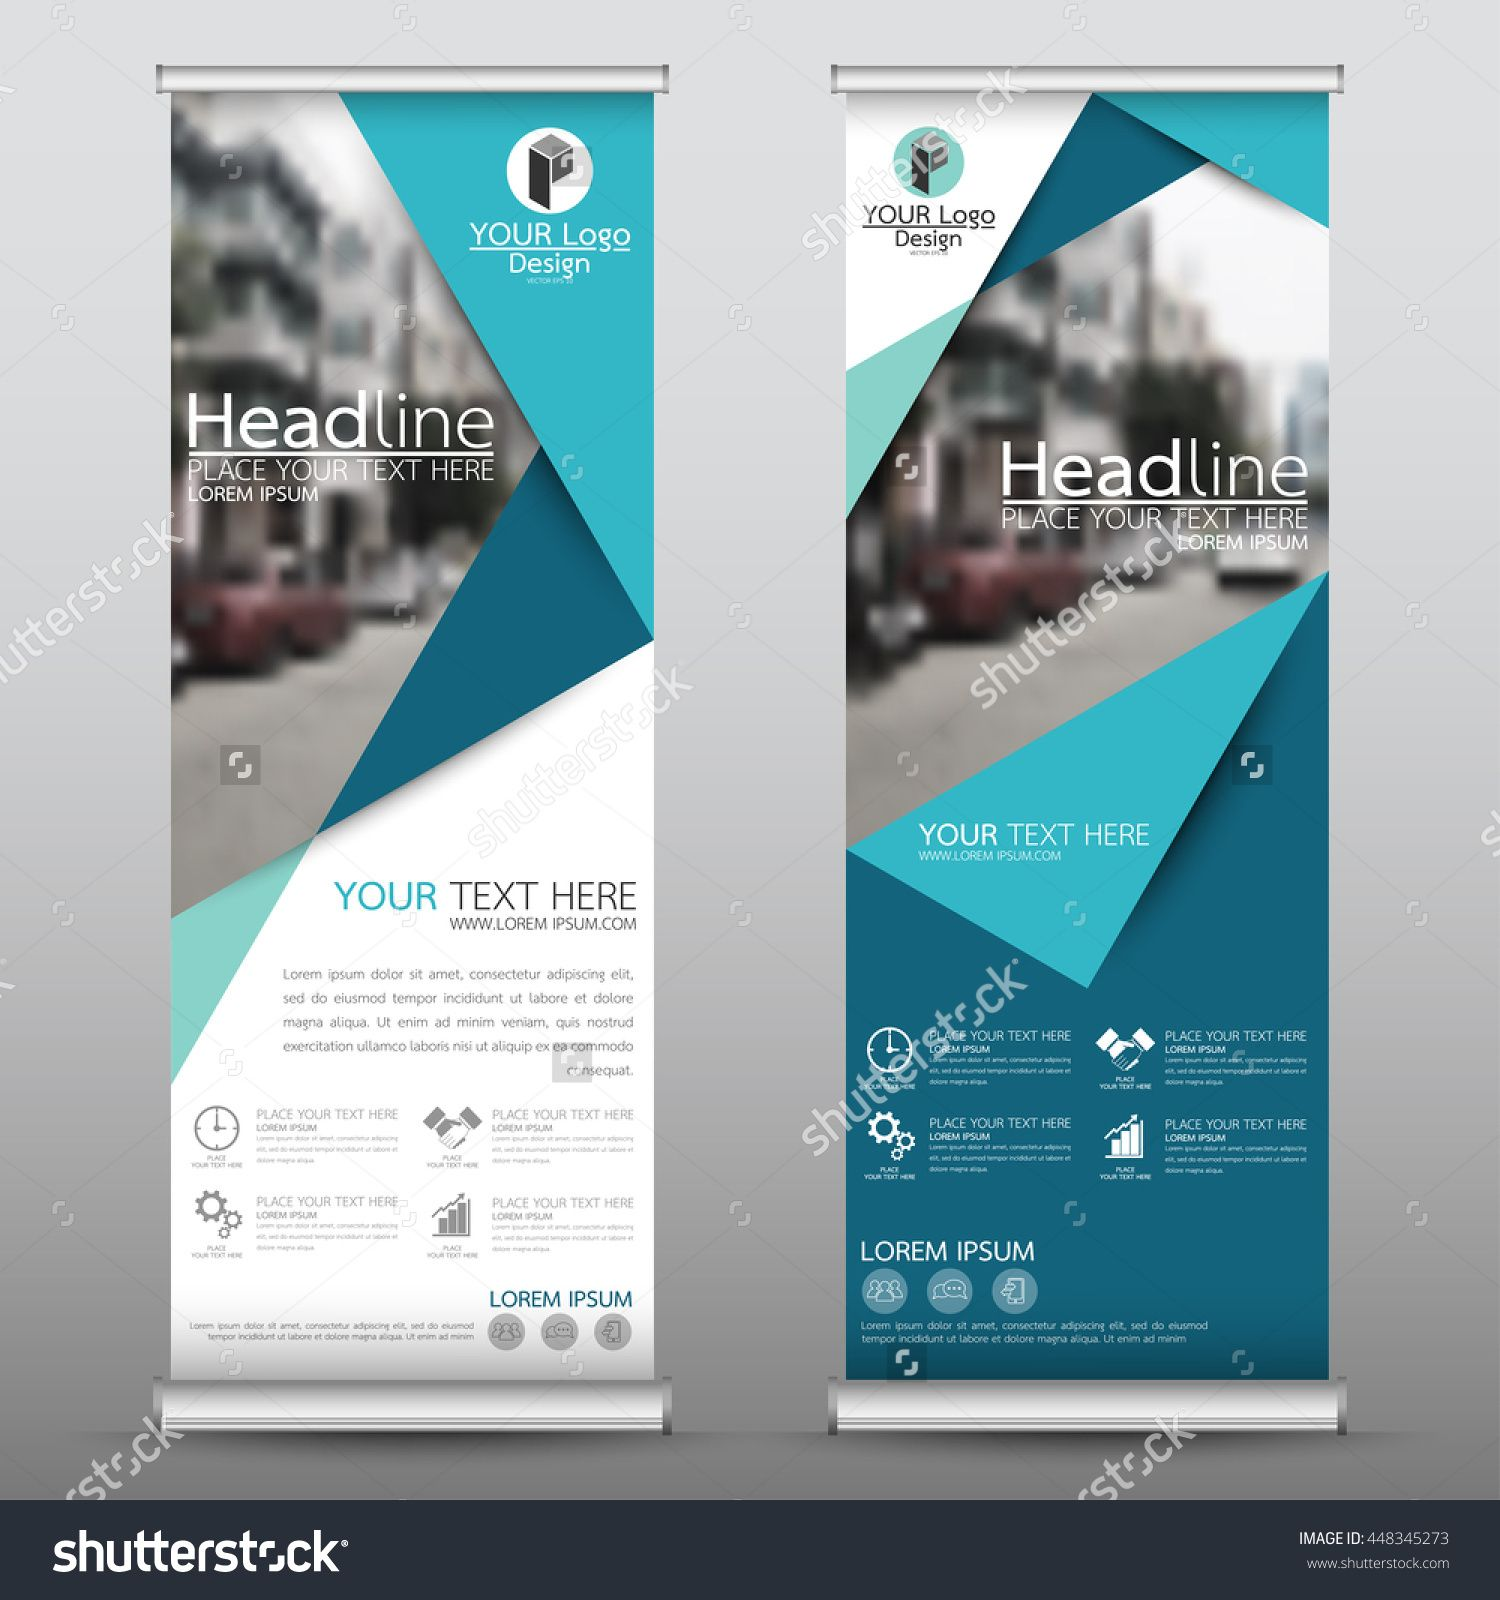 Blue Roll Up Business Brochure Flyer Banner Design Vertical Template